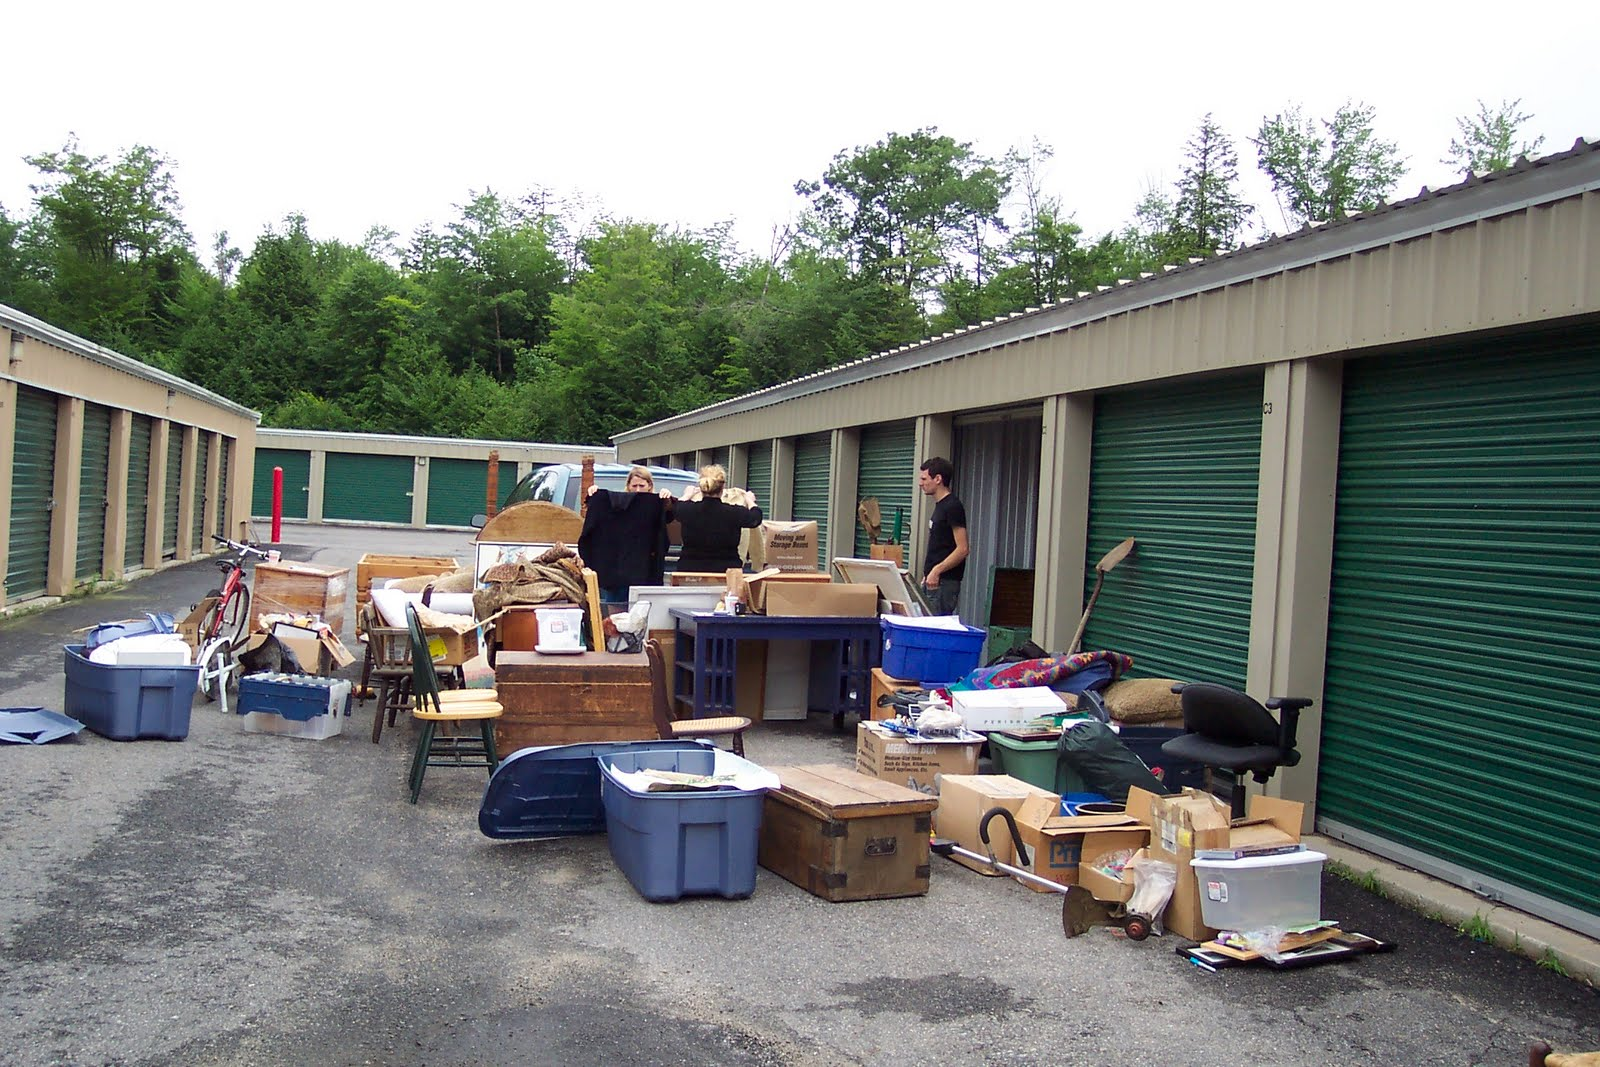 Getting To Empty How To Clean Out A Storage Unit Using Cleaning Equipment And How To Deal With Cleaning Deposits & Cleaning Equipment | Storage Unit Auctions | Storage Auction How To